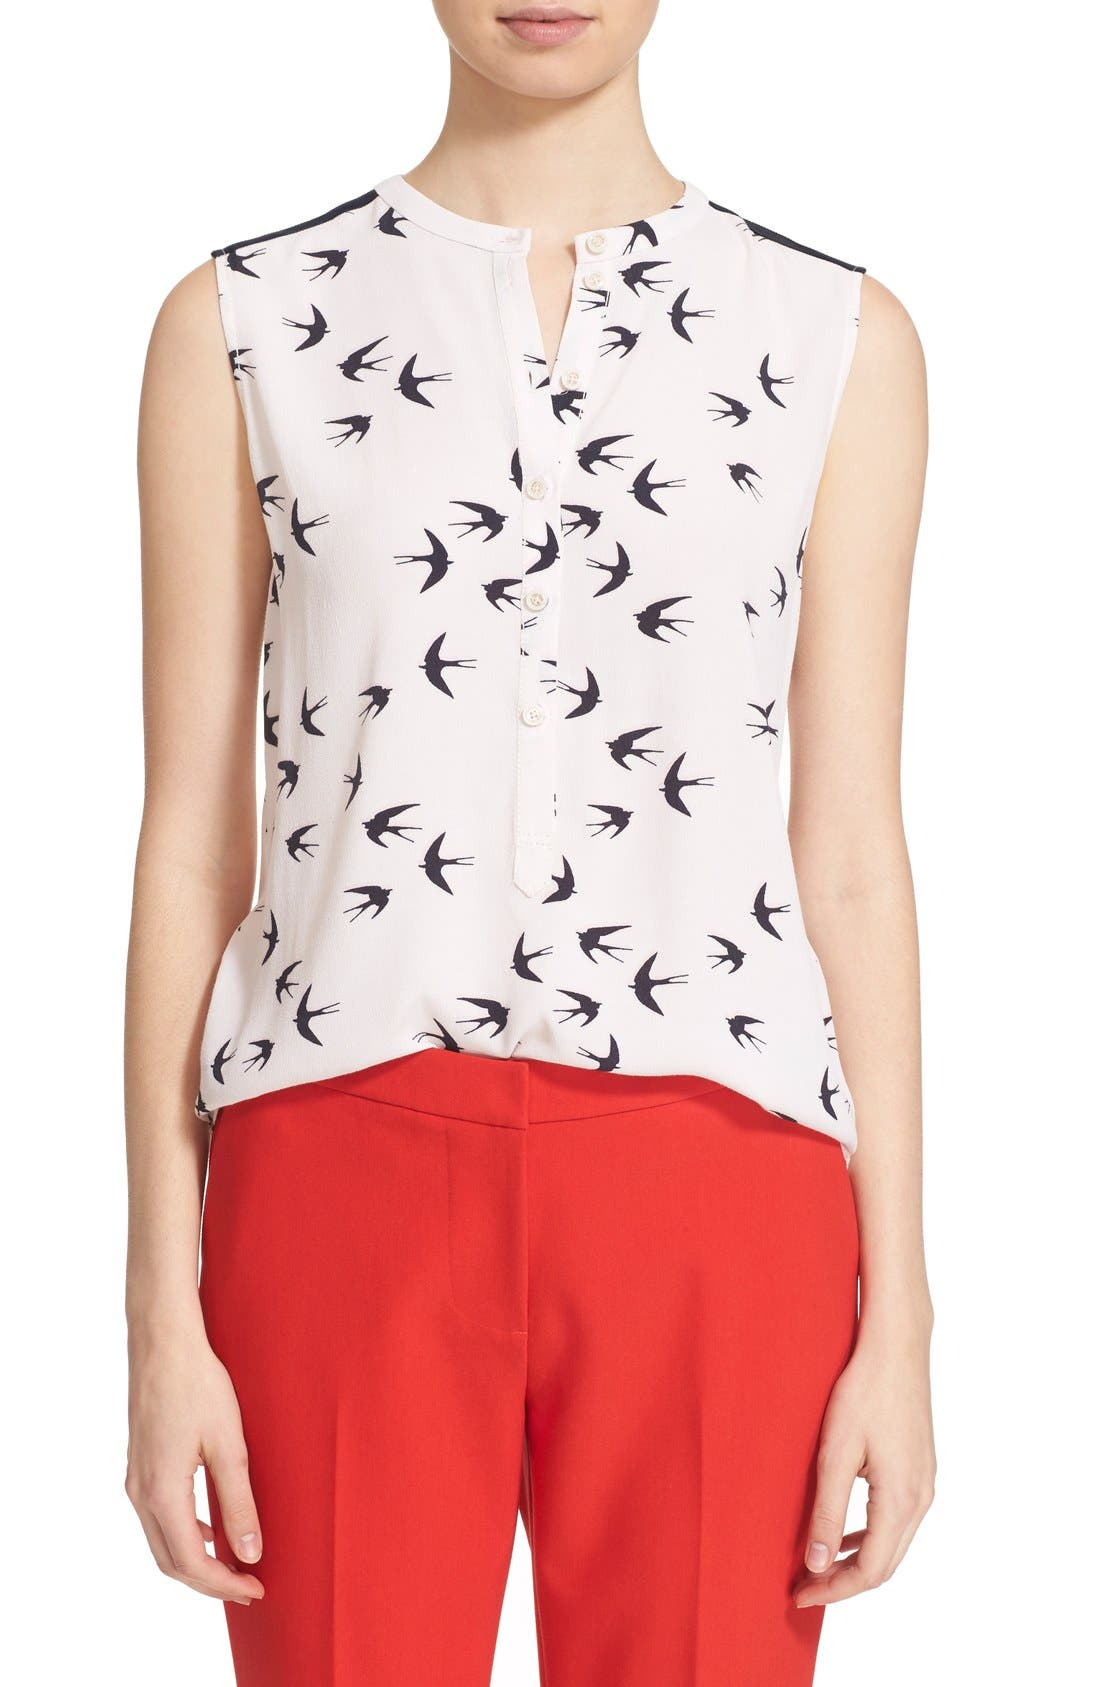 Alternate Image 1 Selected - kate spade new york 'winter' sleeveless top